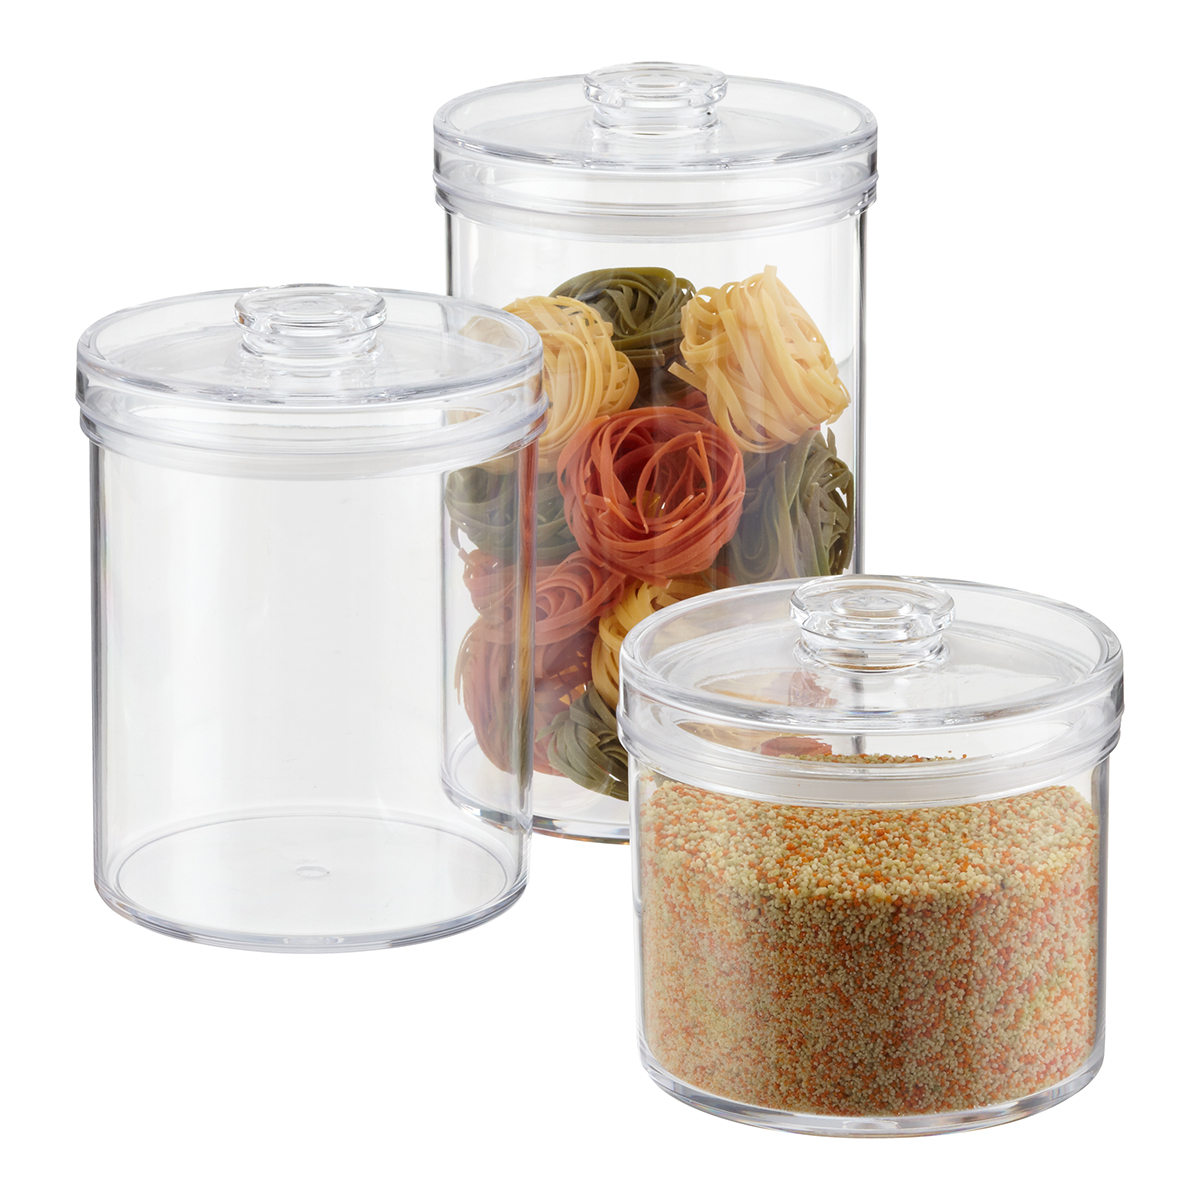 clear kitchen canisters remodel app acrylic round the